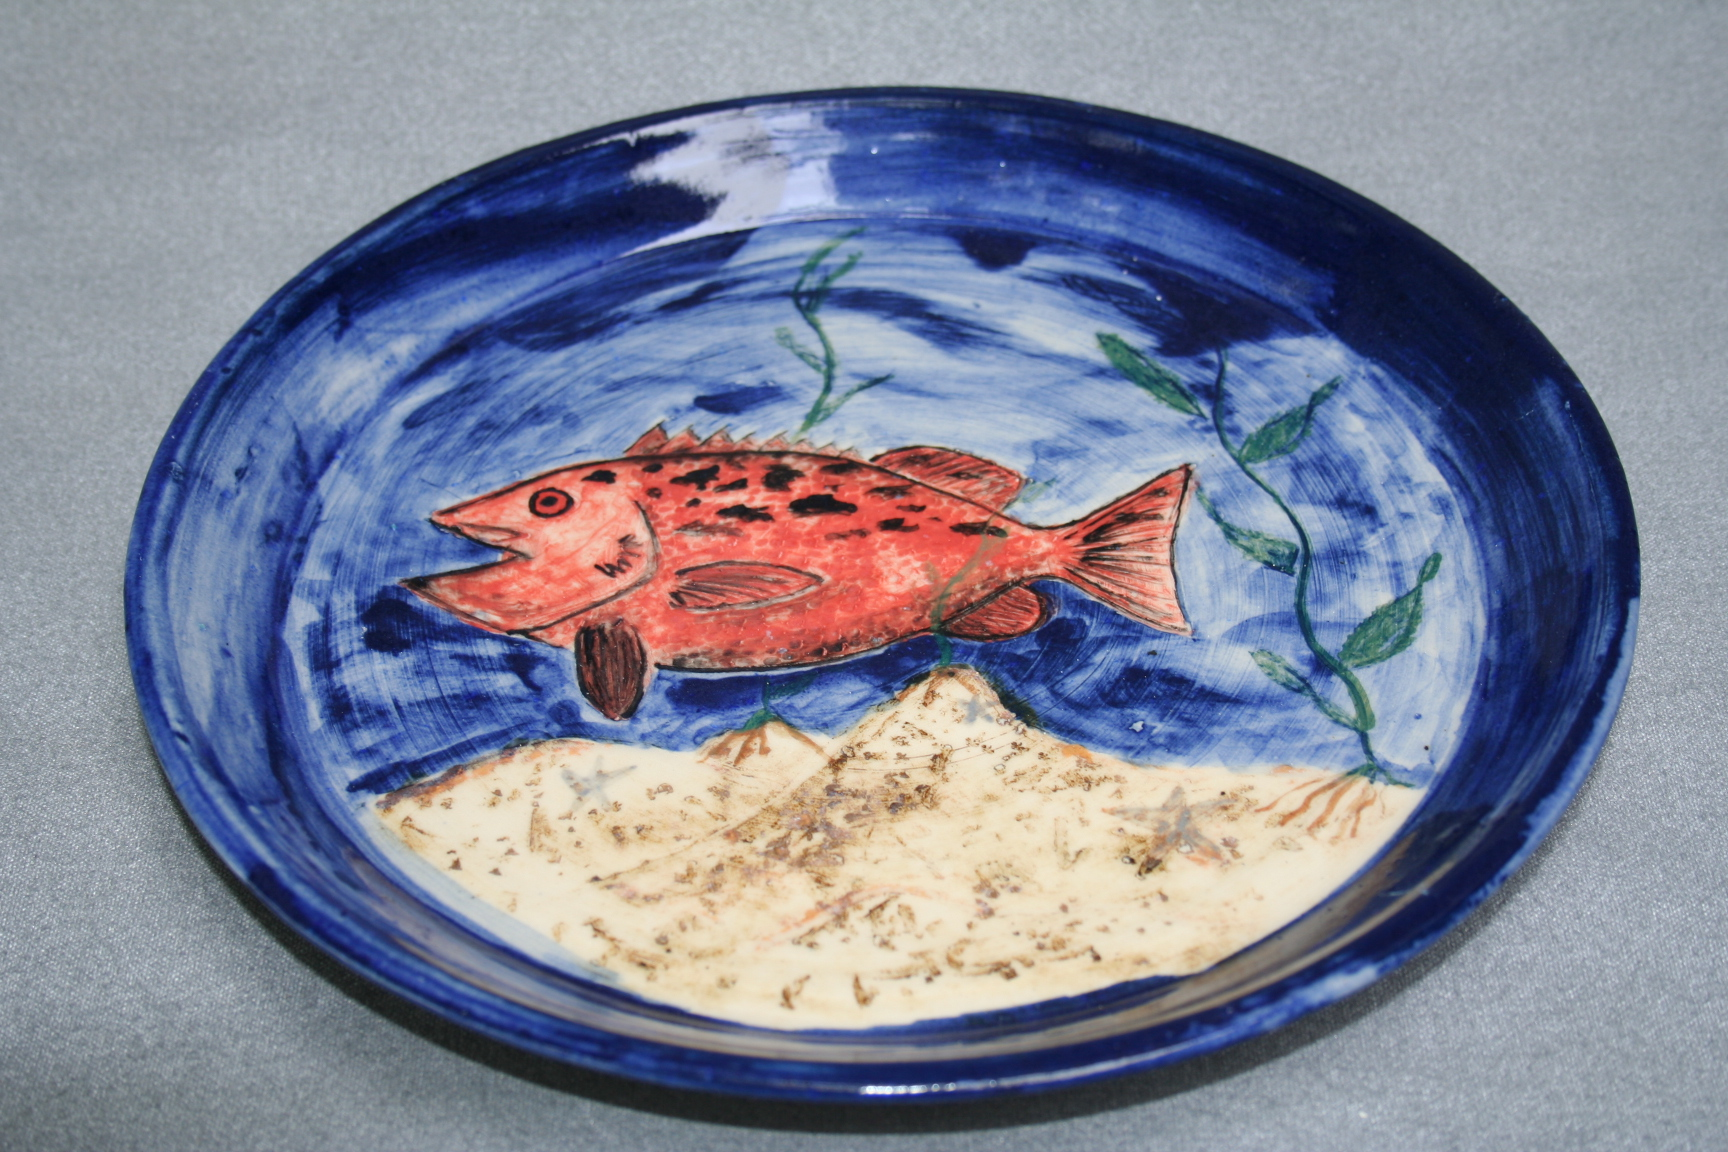 A ceramic plate along with a freshly painted fish over the base